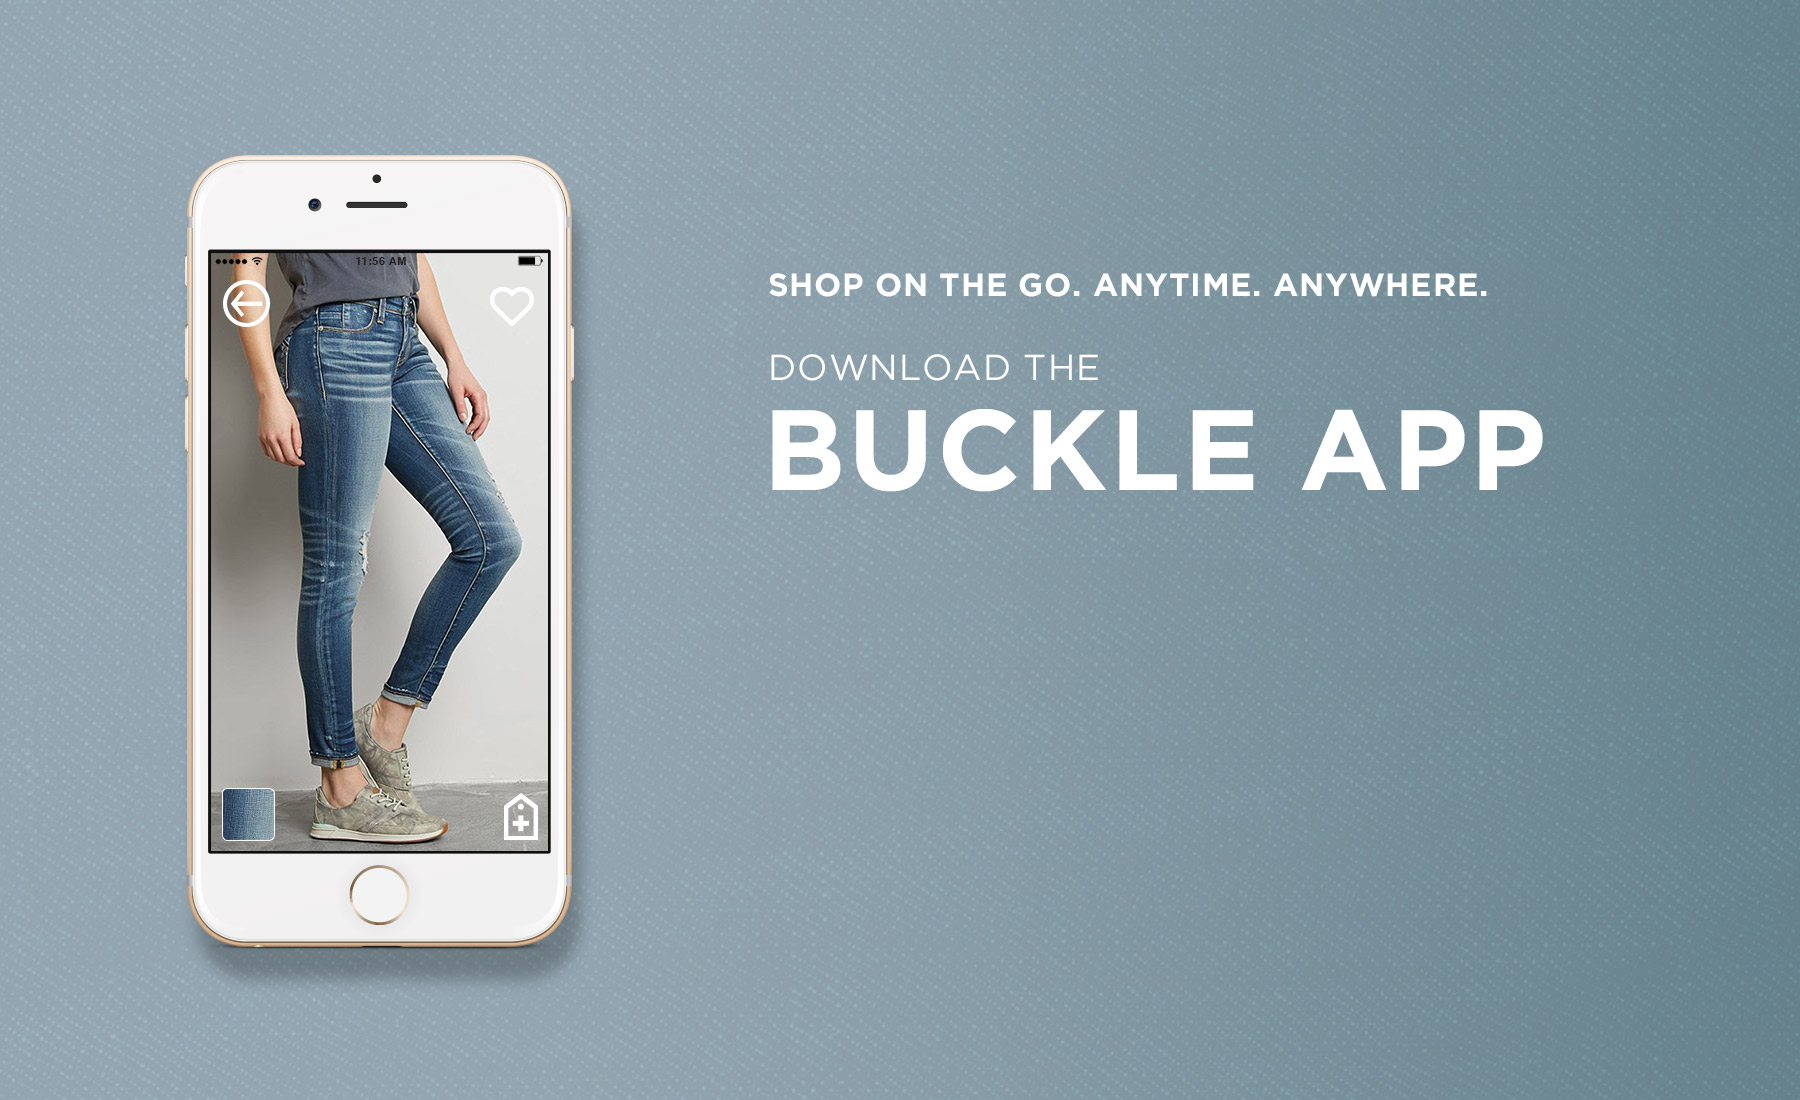 Shop On The Go. Anytime. Anywhere. Download the Buckle App. Cell phone with a Buckle jean showing on the screen.